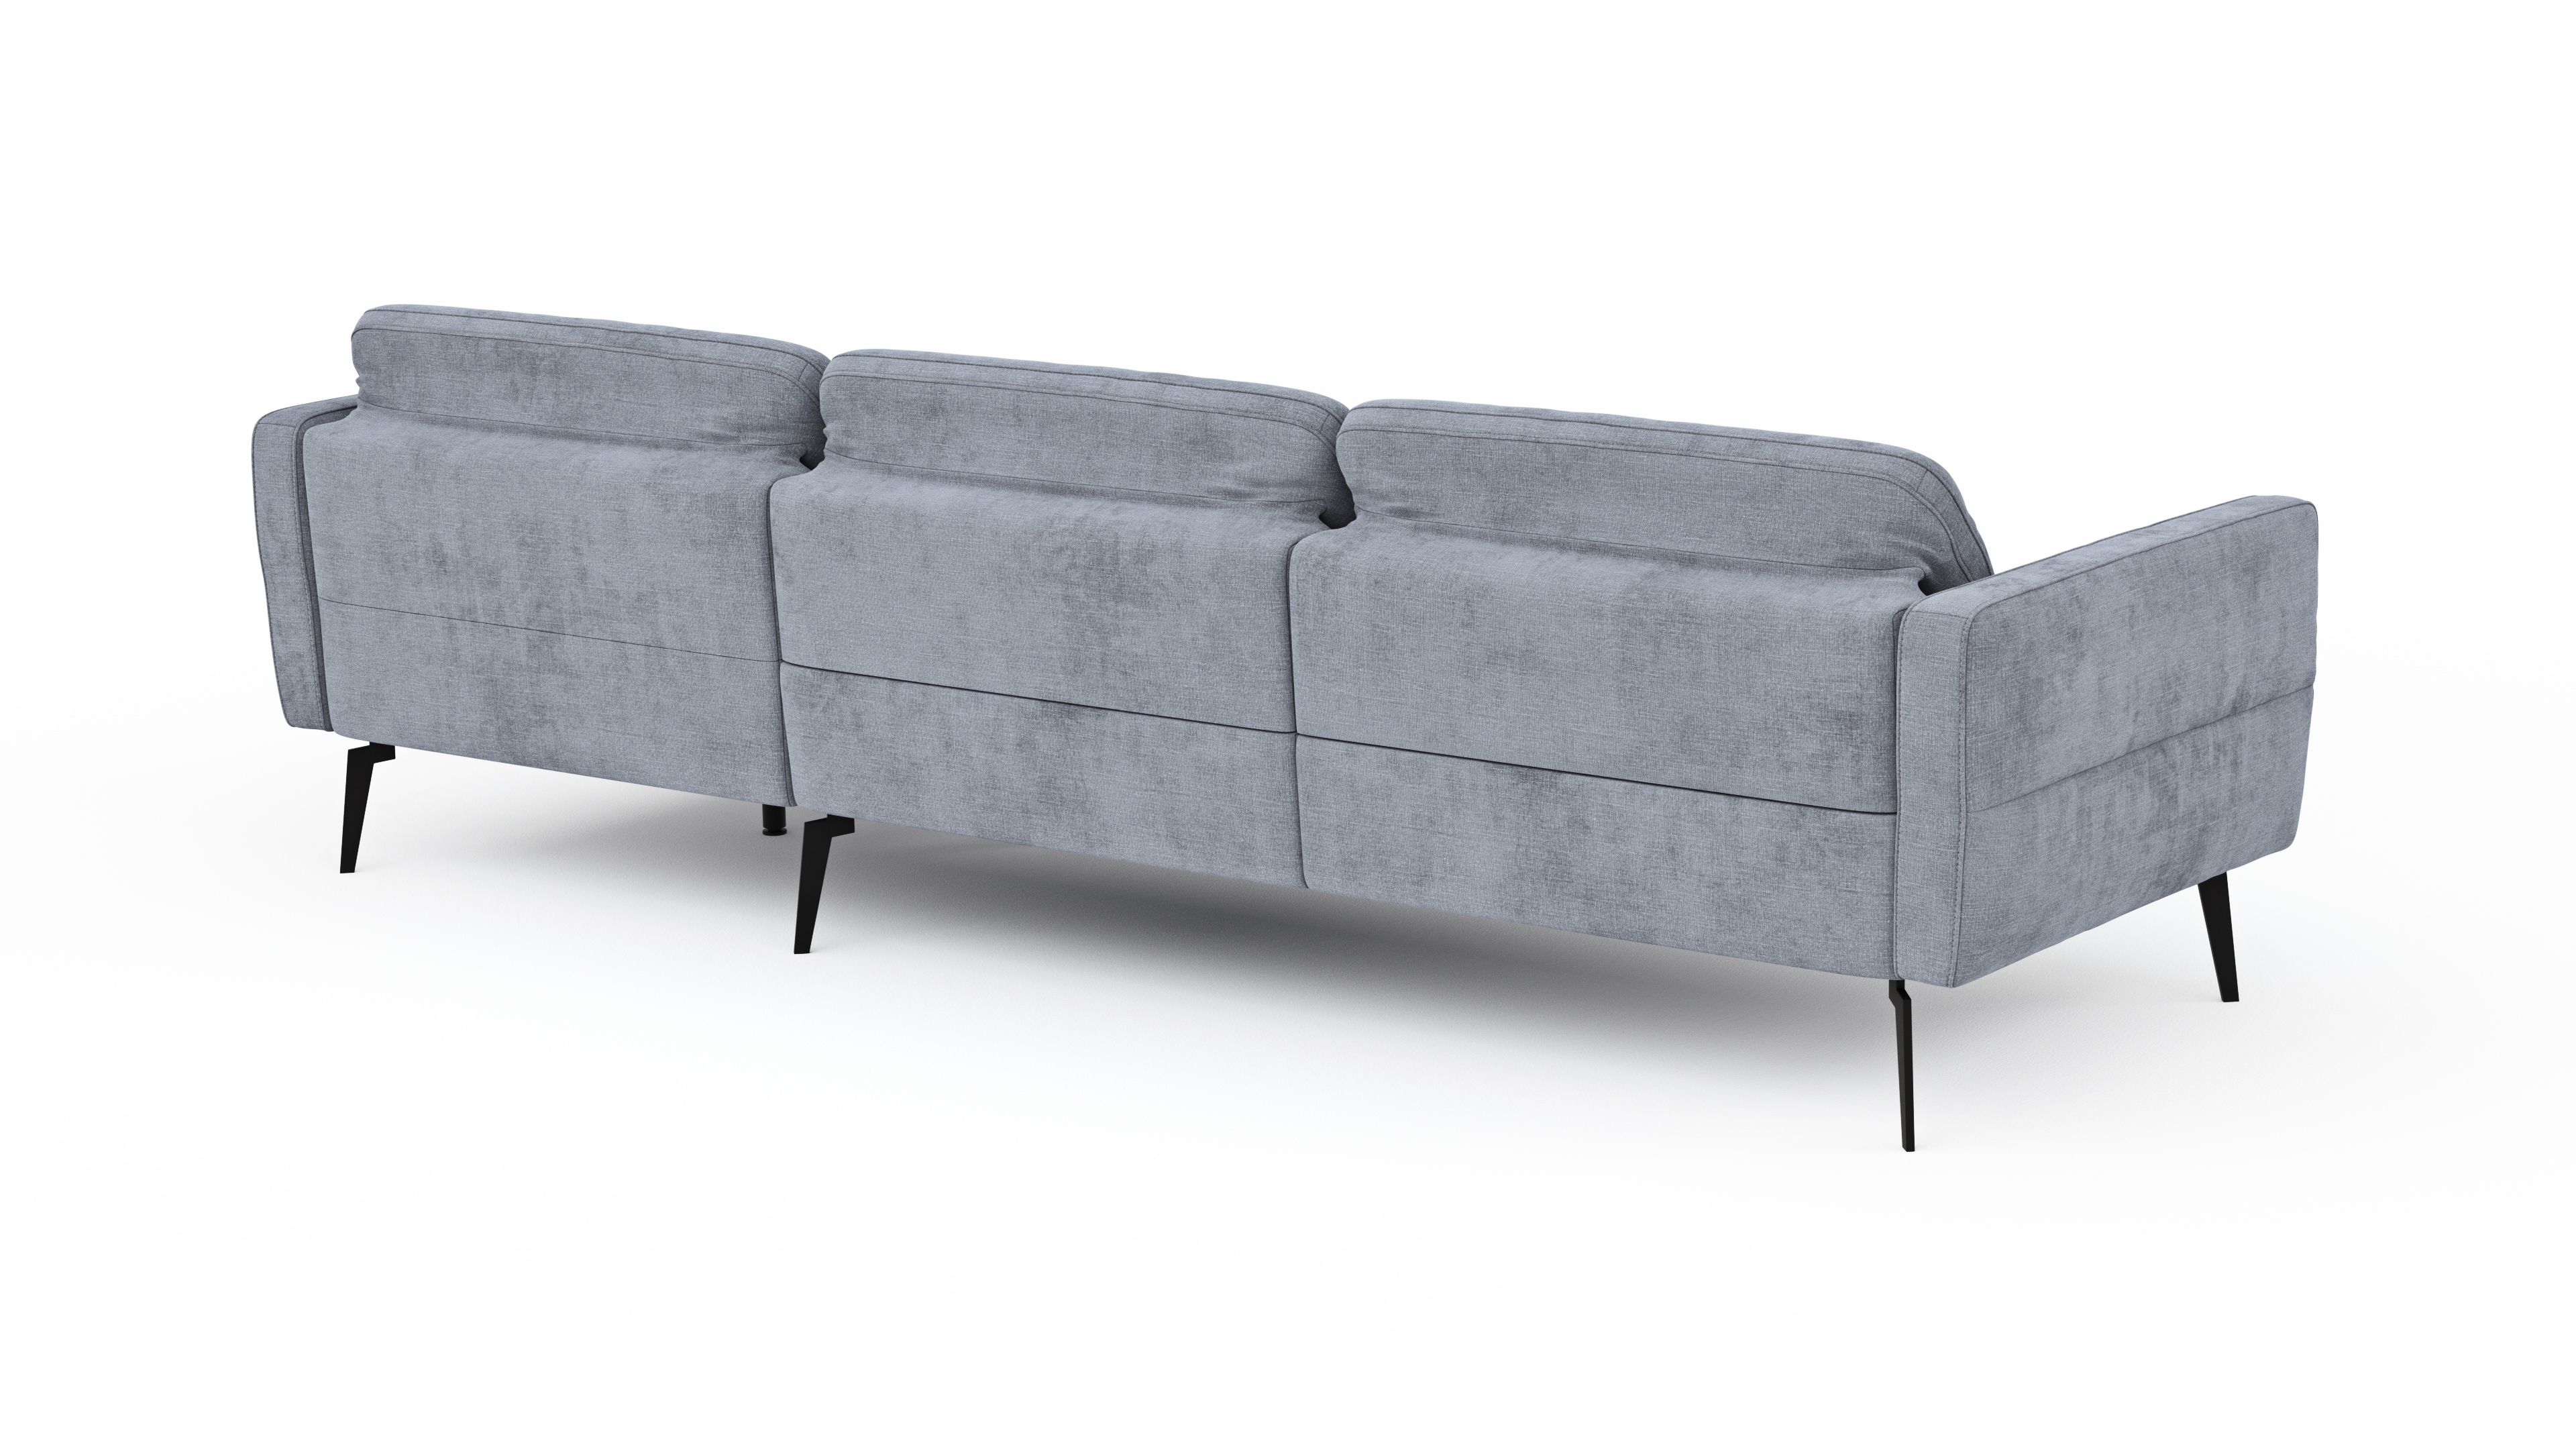 Global Select Ecksofa Estrela freisteller 3 104244 | Homepoet